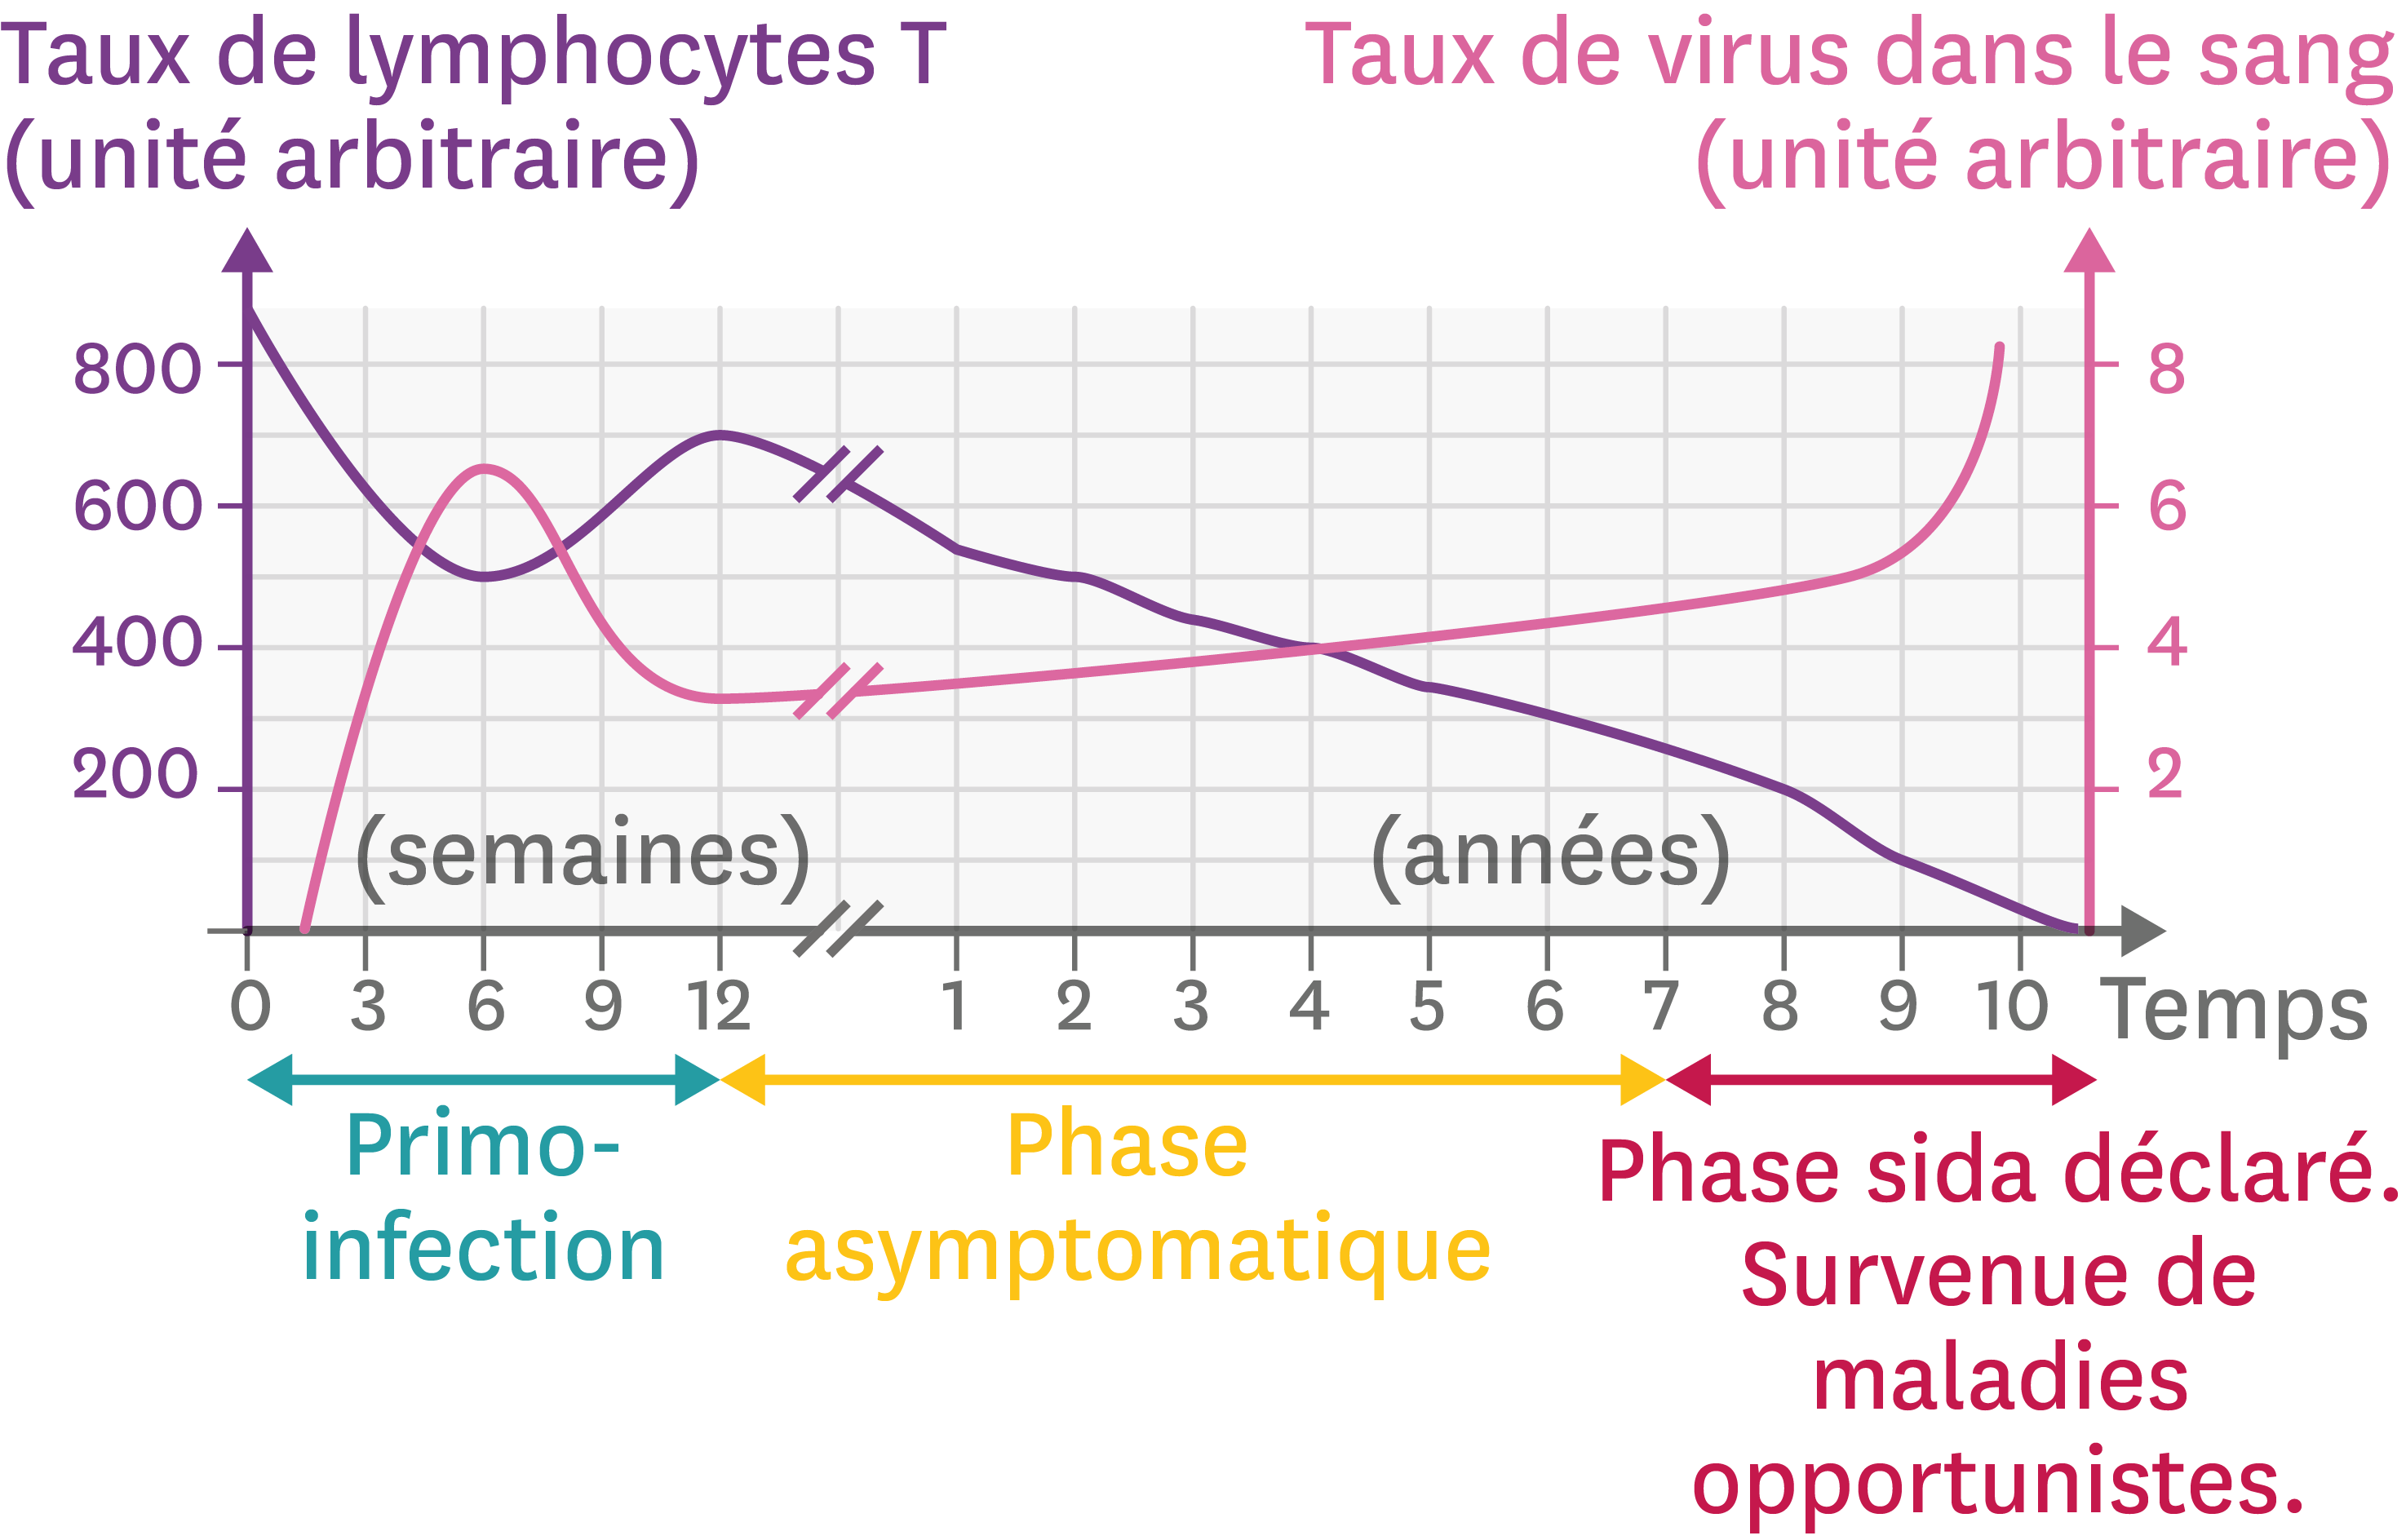 <stamp theme='svt-green1'>Doc. 2</stamp> L'évolution de l'infection par le VIH en fonction du temps.